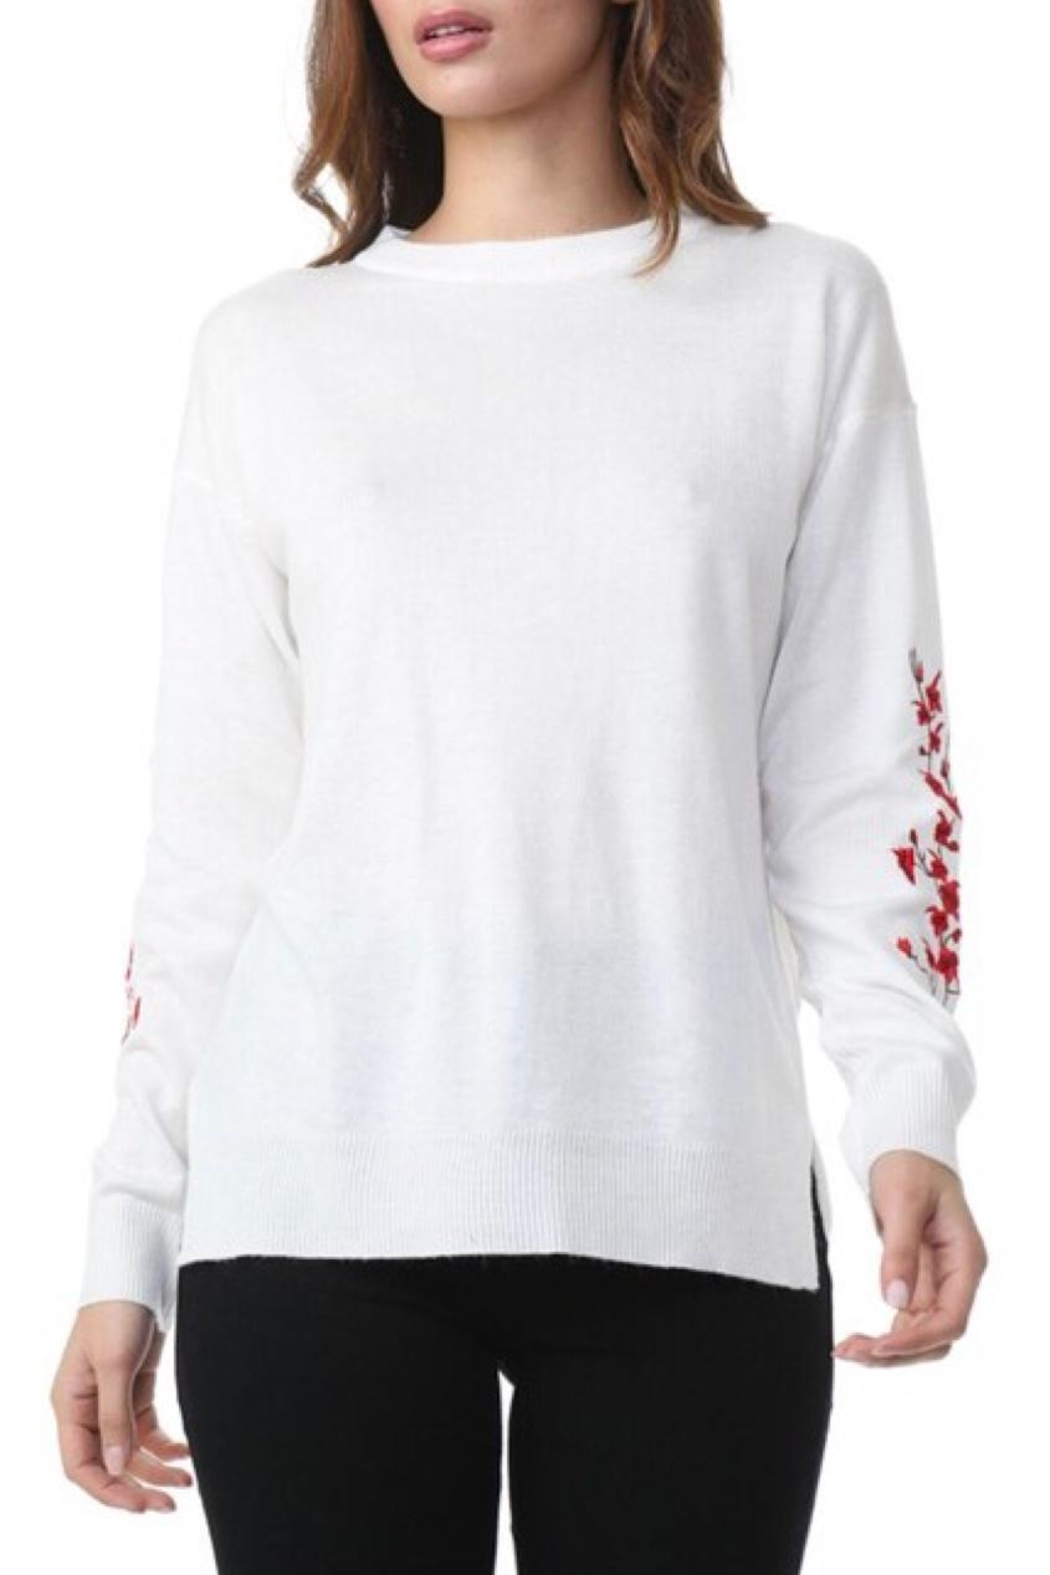 COVERSTITCHED Embroidered Sleeve Sweater - Front Full Image